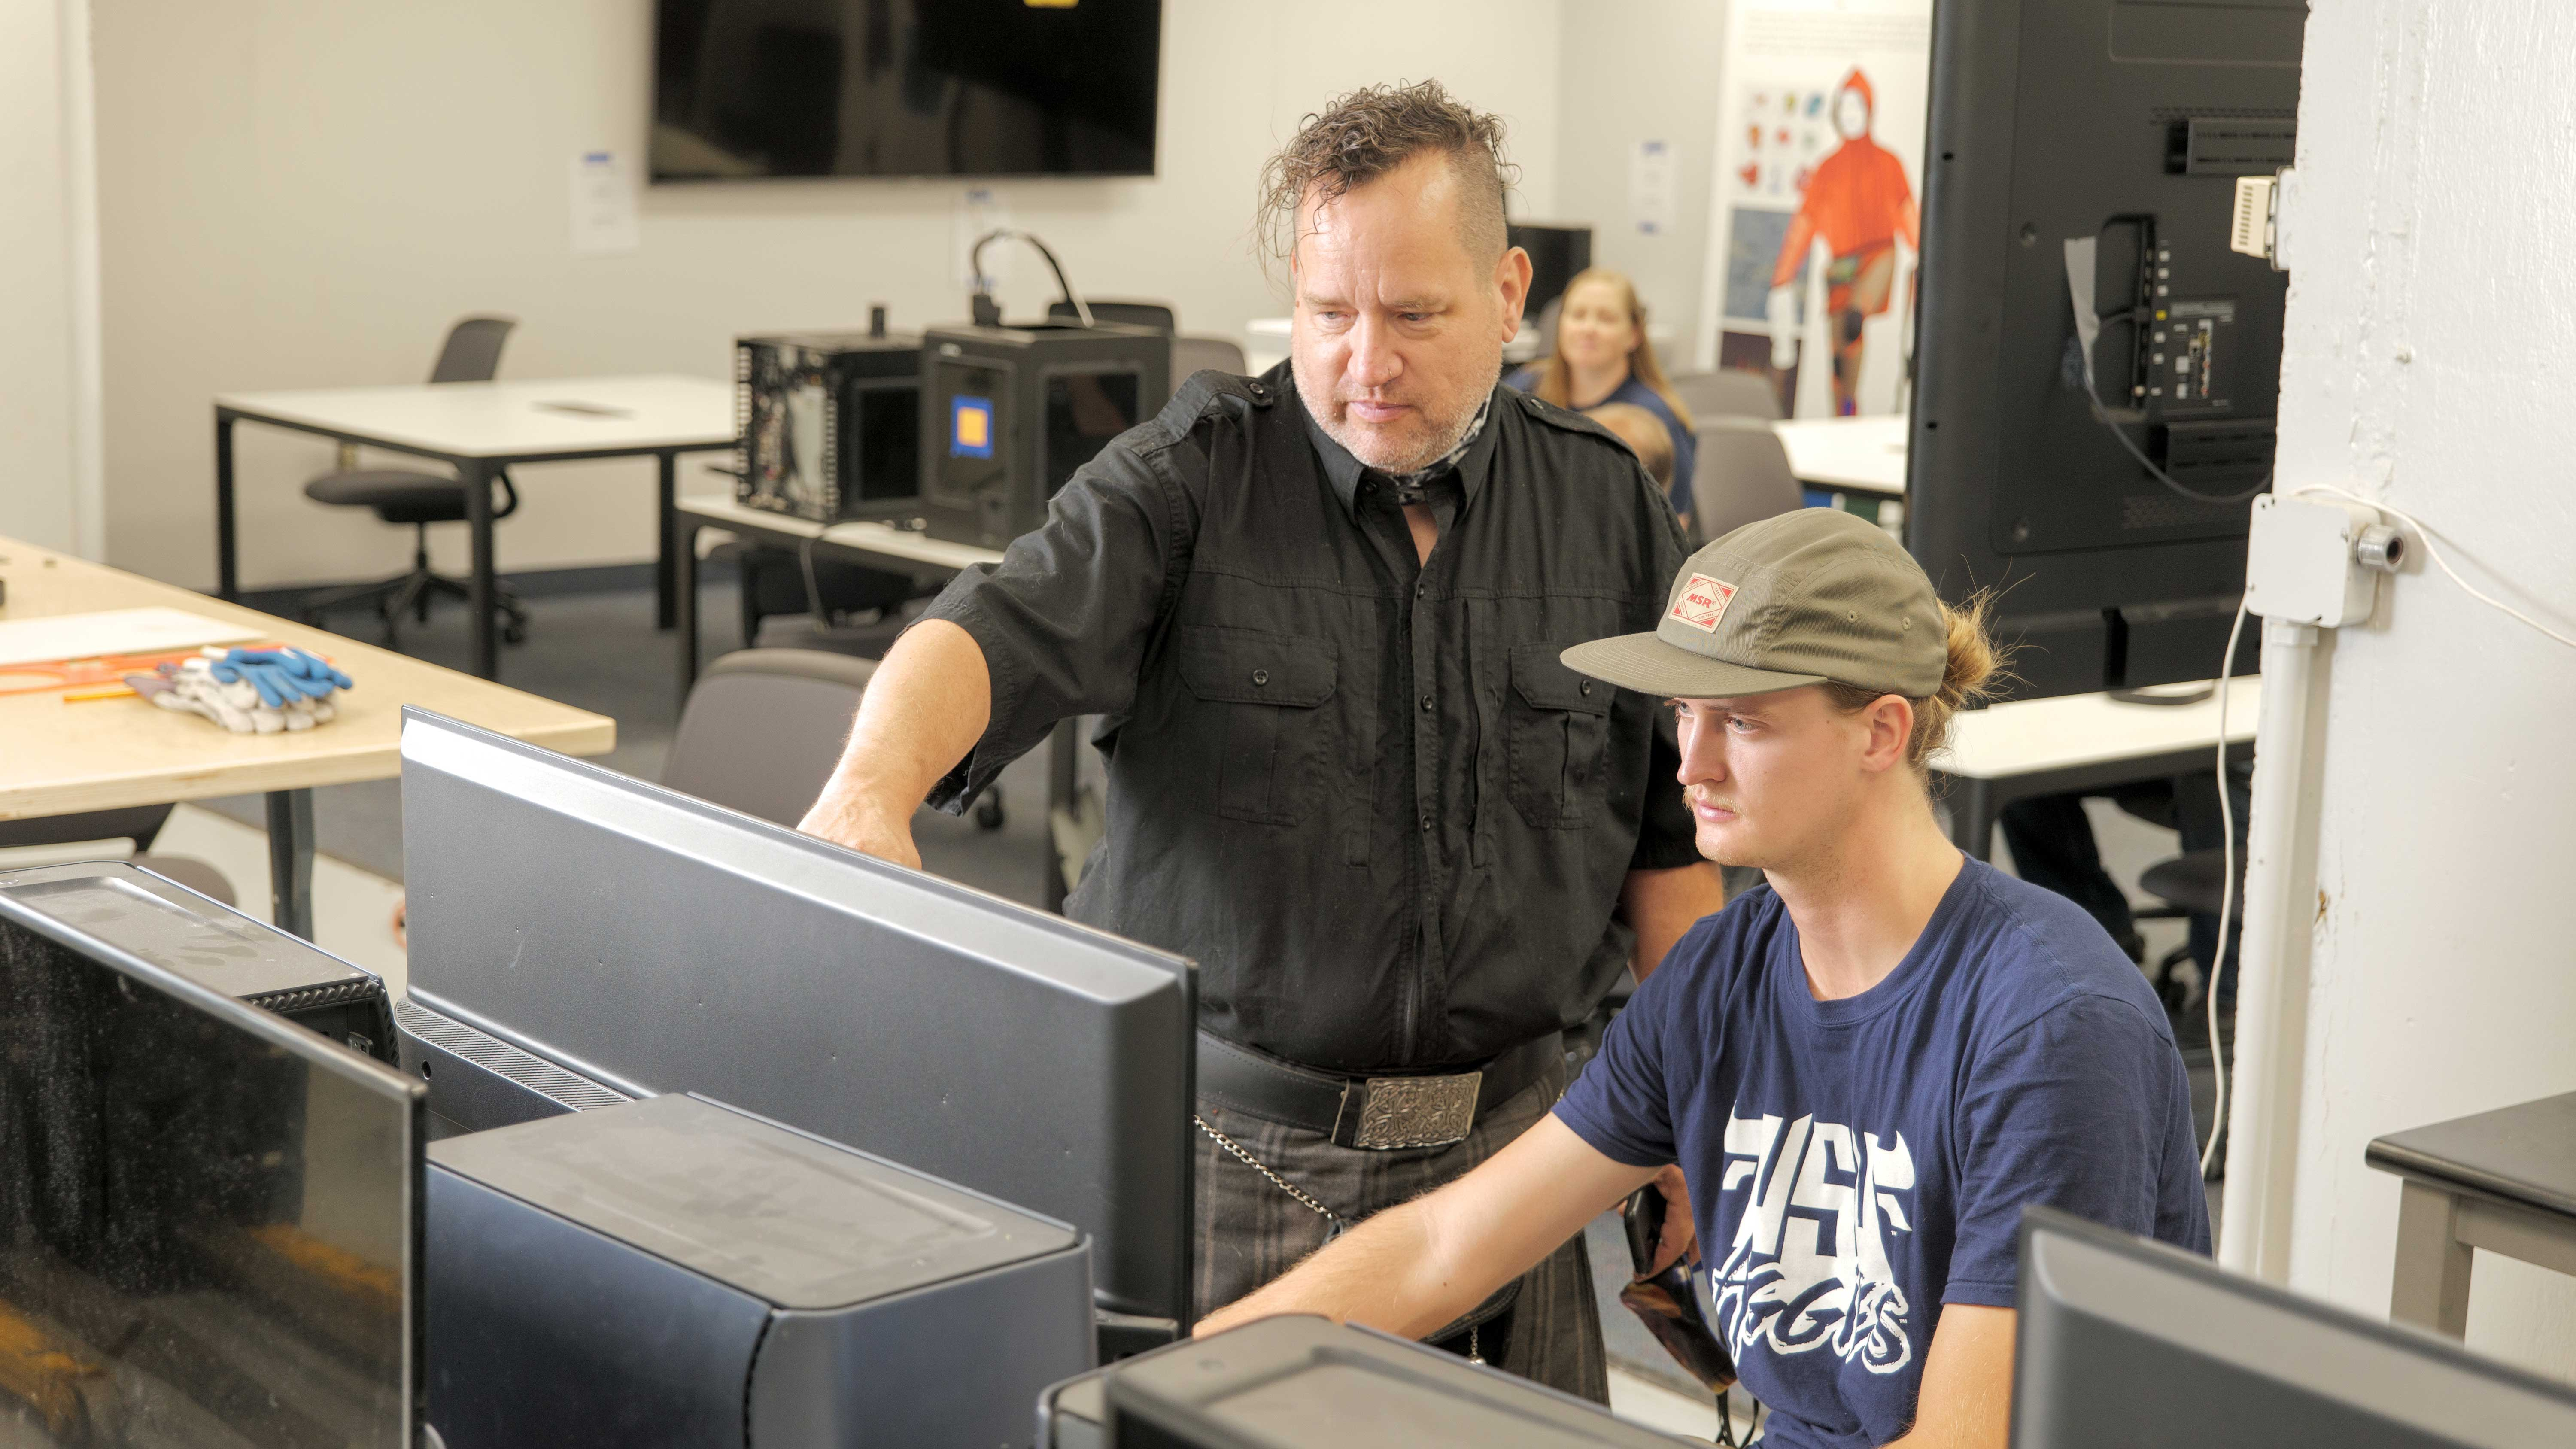 Technology Systems student and professor working in a computer lab.